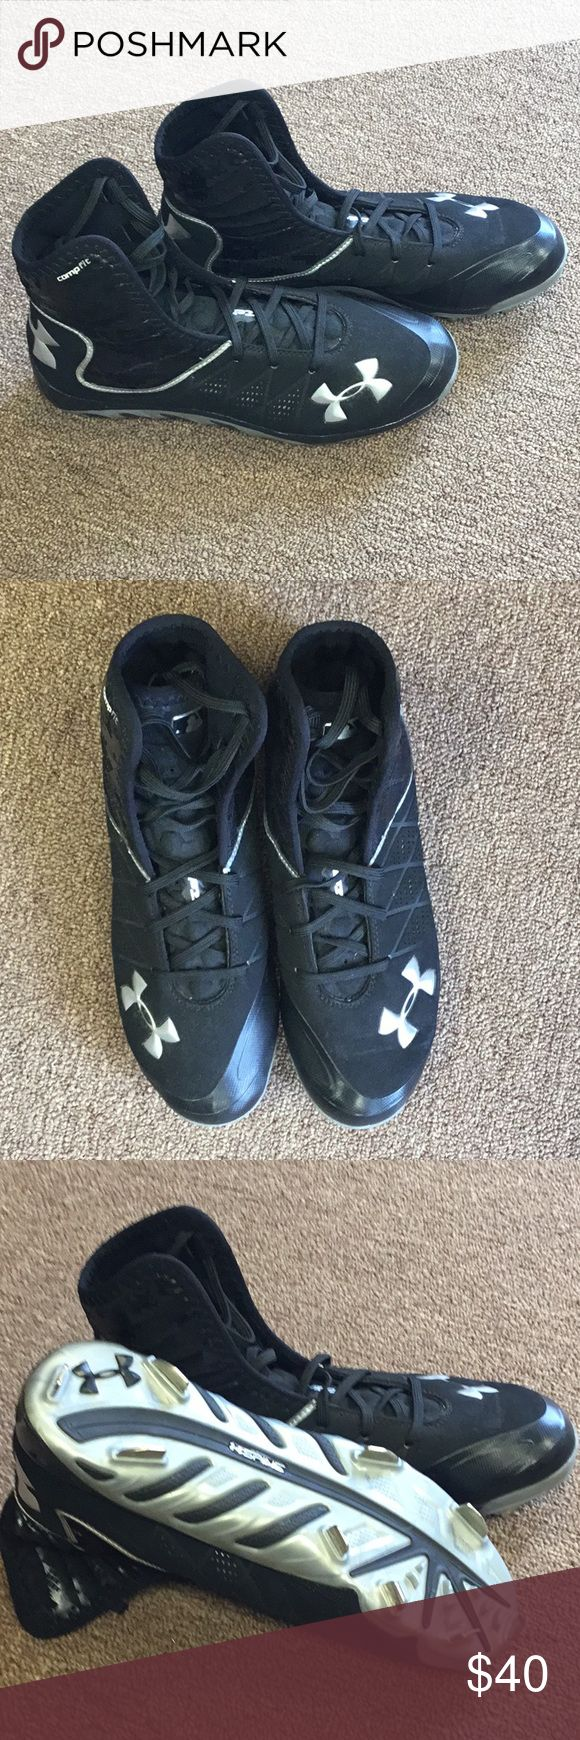 Under Armour Cleats and spikes shoes Under Armour brand cleats. Metal cleats, high tops, Spine label on bottom, compfit. Under Armour Shoes Athletic Shoes